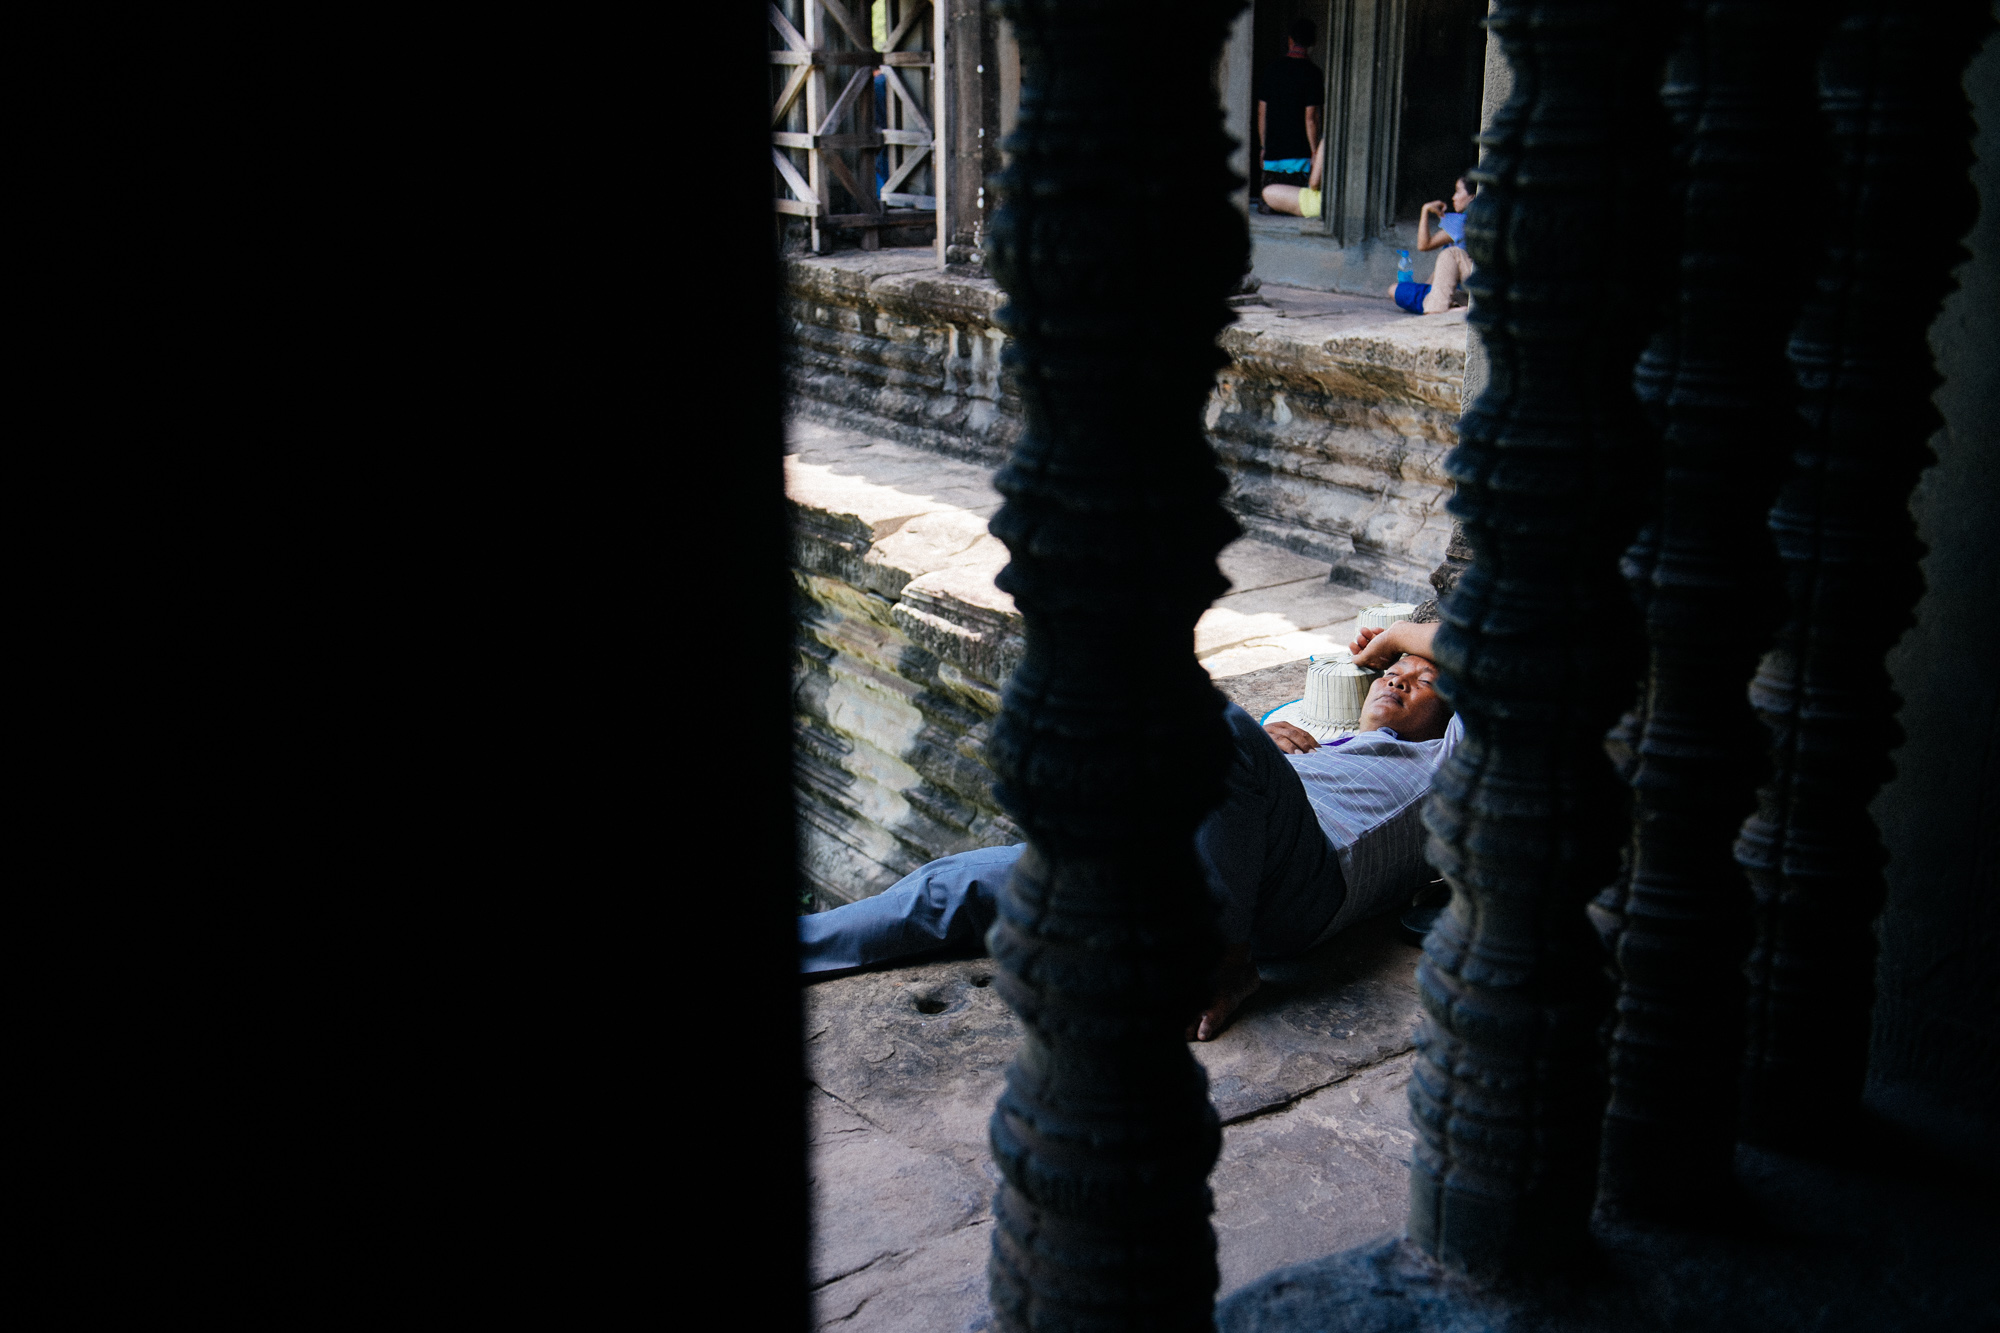 Man takes a break from the hot and humid Cambodian summer outside a window at the Wat.